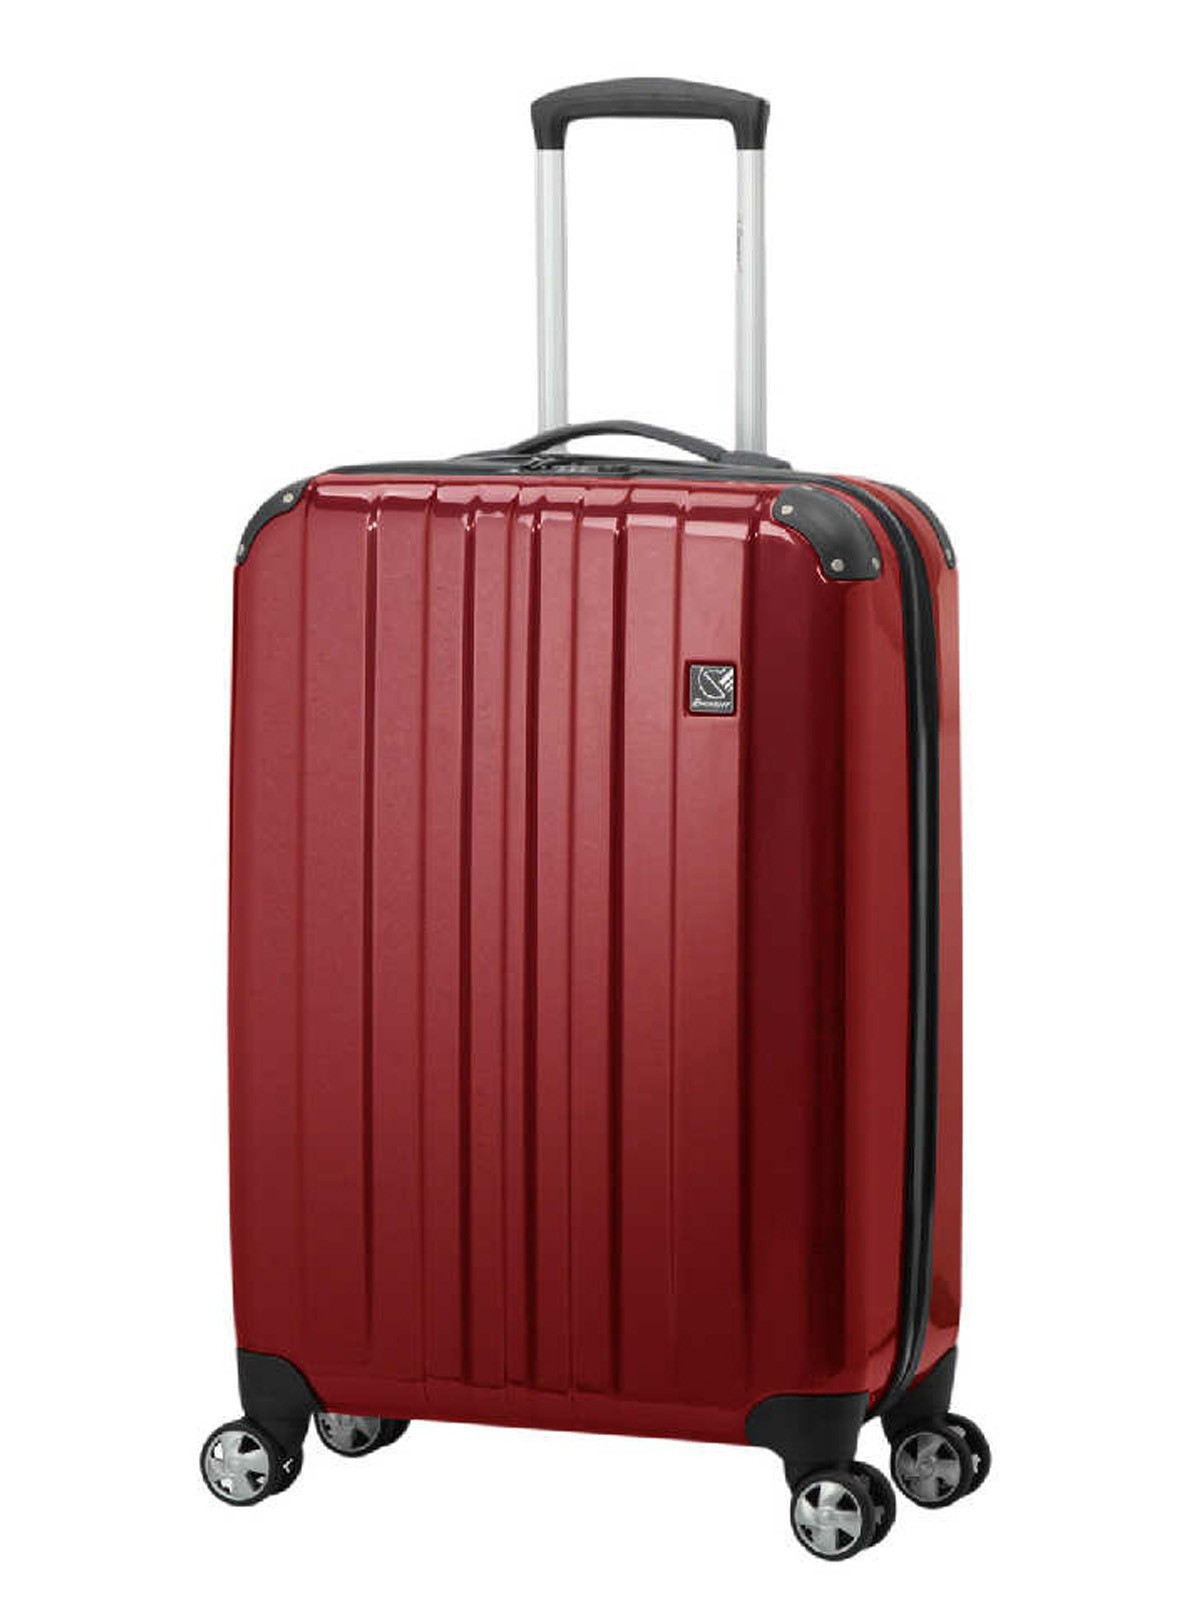 Eminent Move Air 56cm Cabin Spinner Case in Ruby